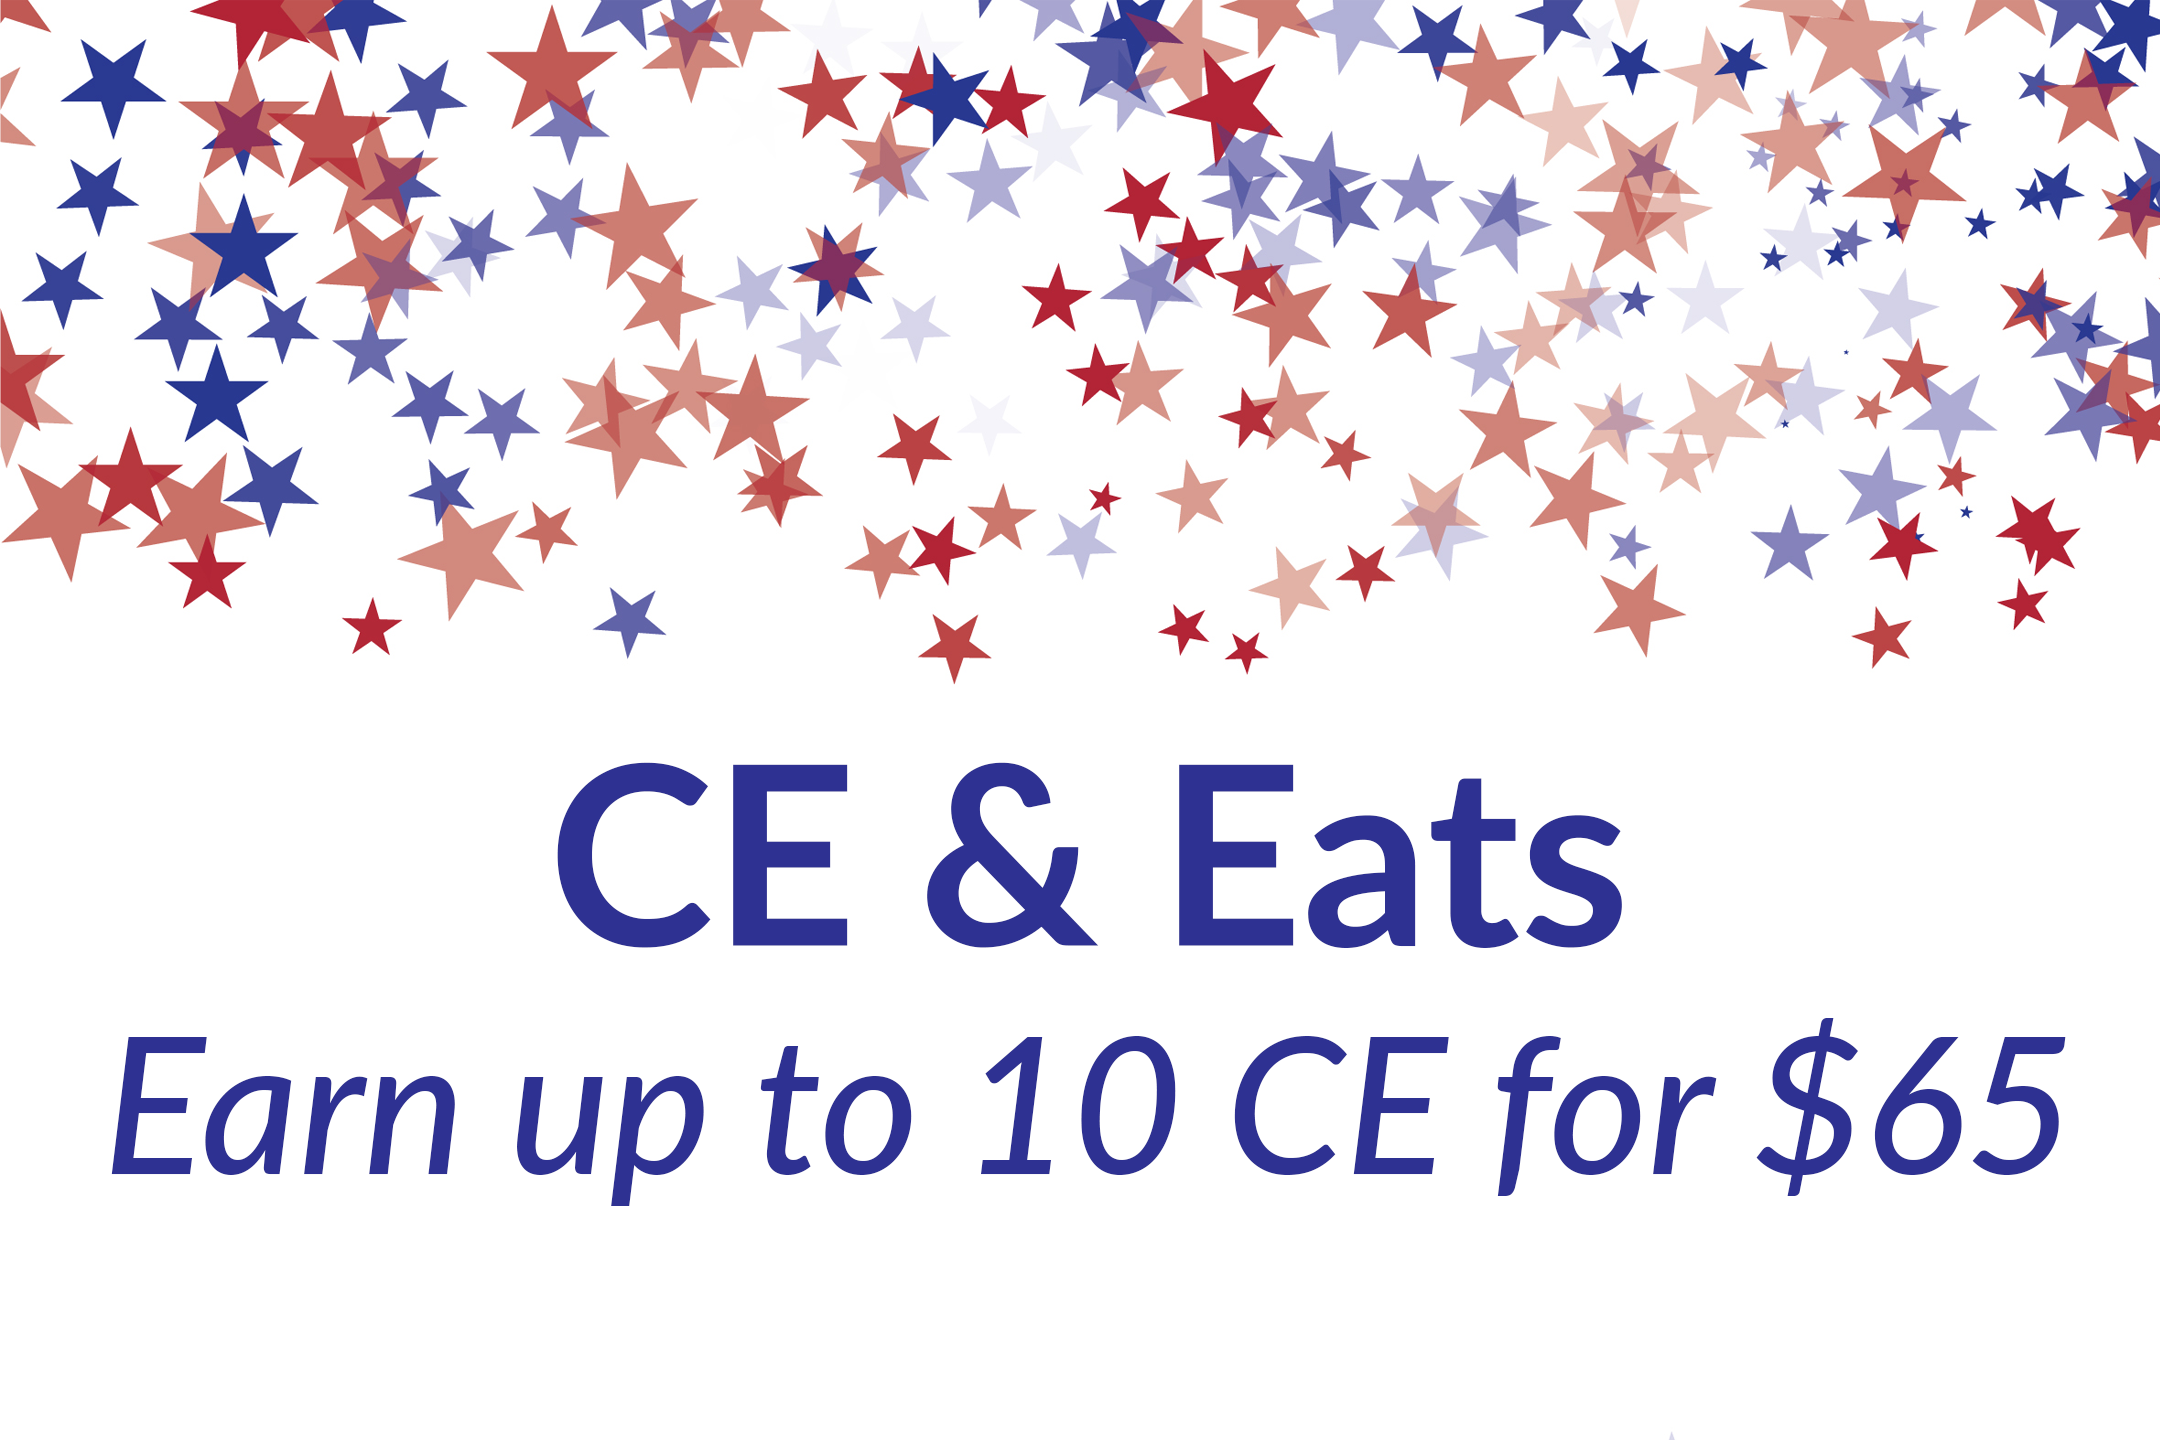 10 CE & Eats for $65 on July 19th